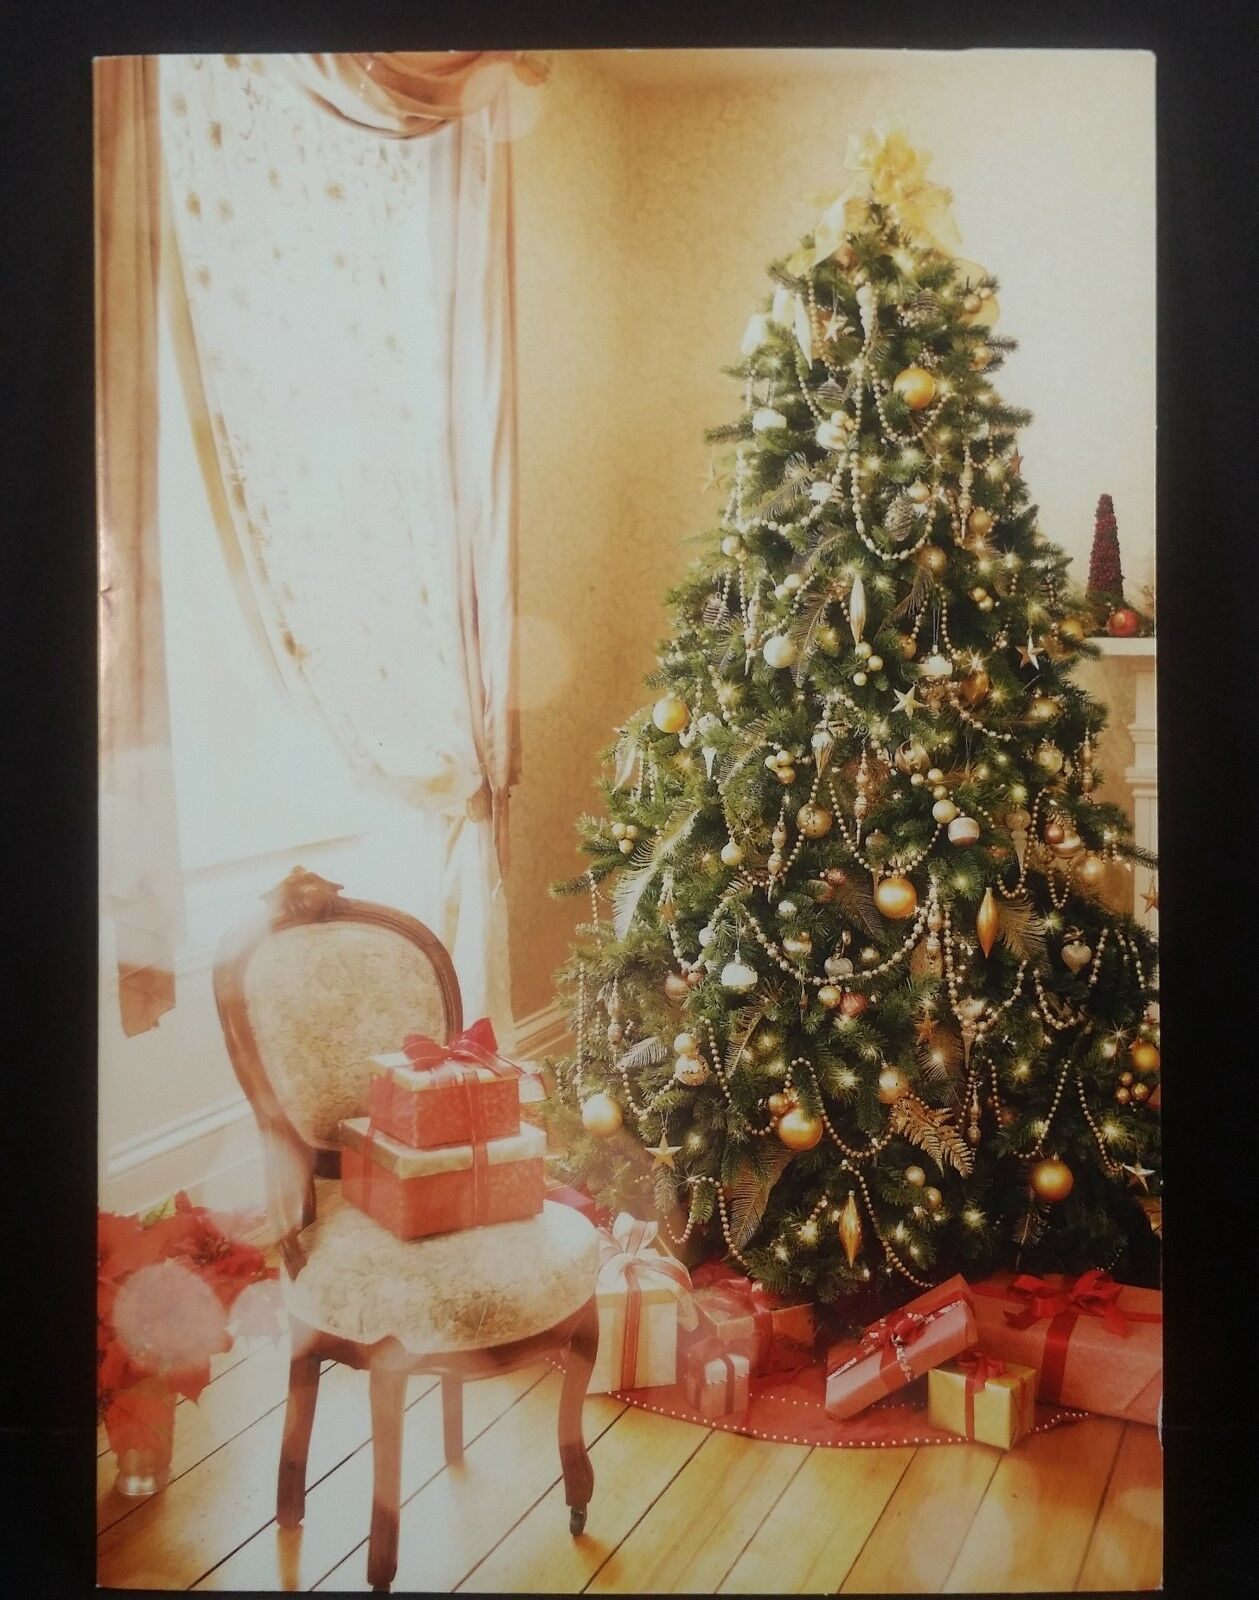 Vintage american greetings used christmas card christmas tree vintage american greetings used christmas card christmas tree gifts presents 1 of 2free shipping m4hsunfo